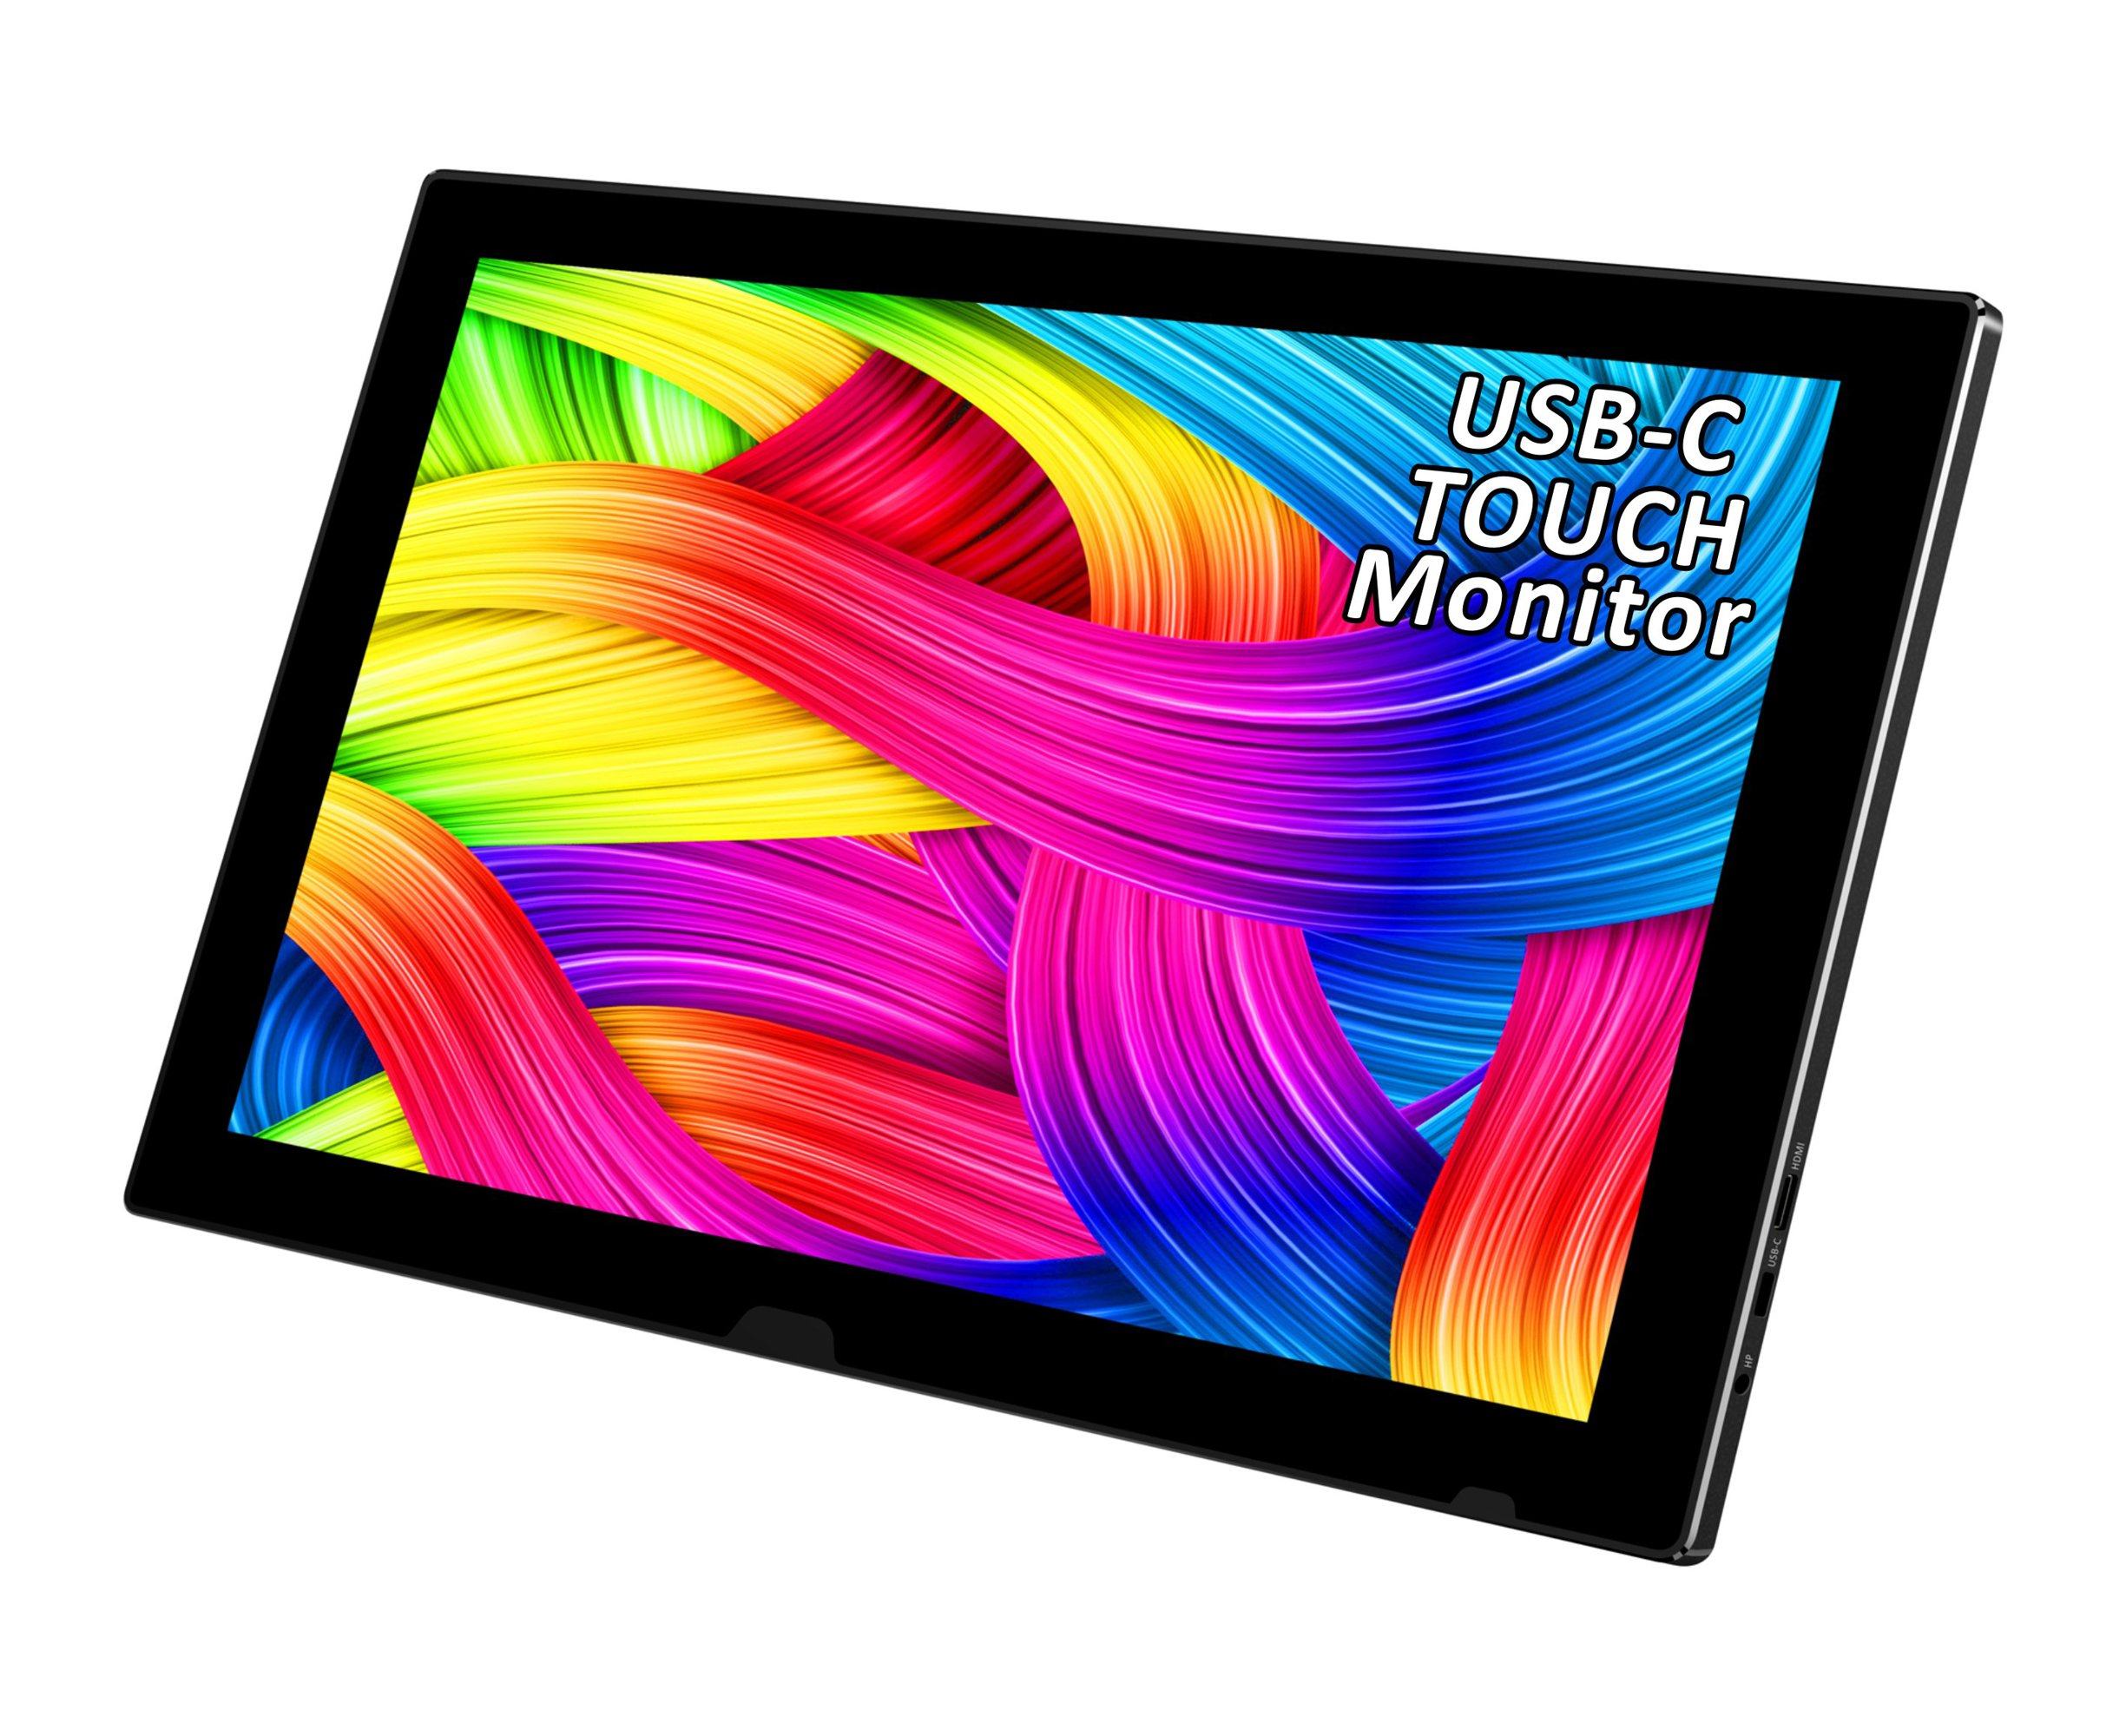 USB Portable Monitor,11.6 Inch 19201080 Full HD IPS Display,10 Points Capacitive Touch,USB C/HDMI Video Input, Extremely Slim 9.8 CM,Alu Body,Bulit In Speakers